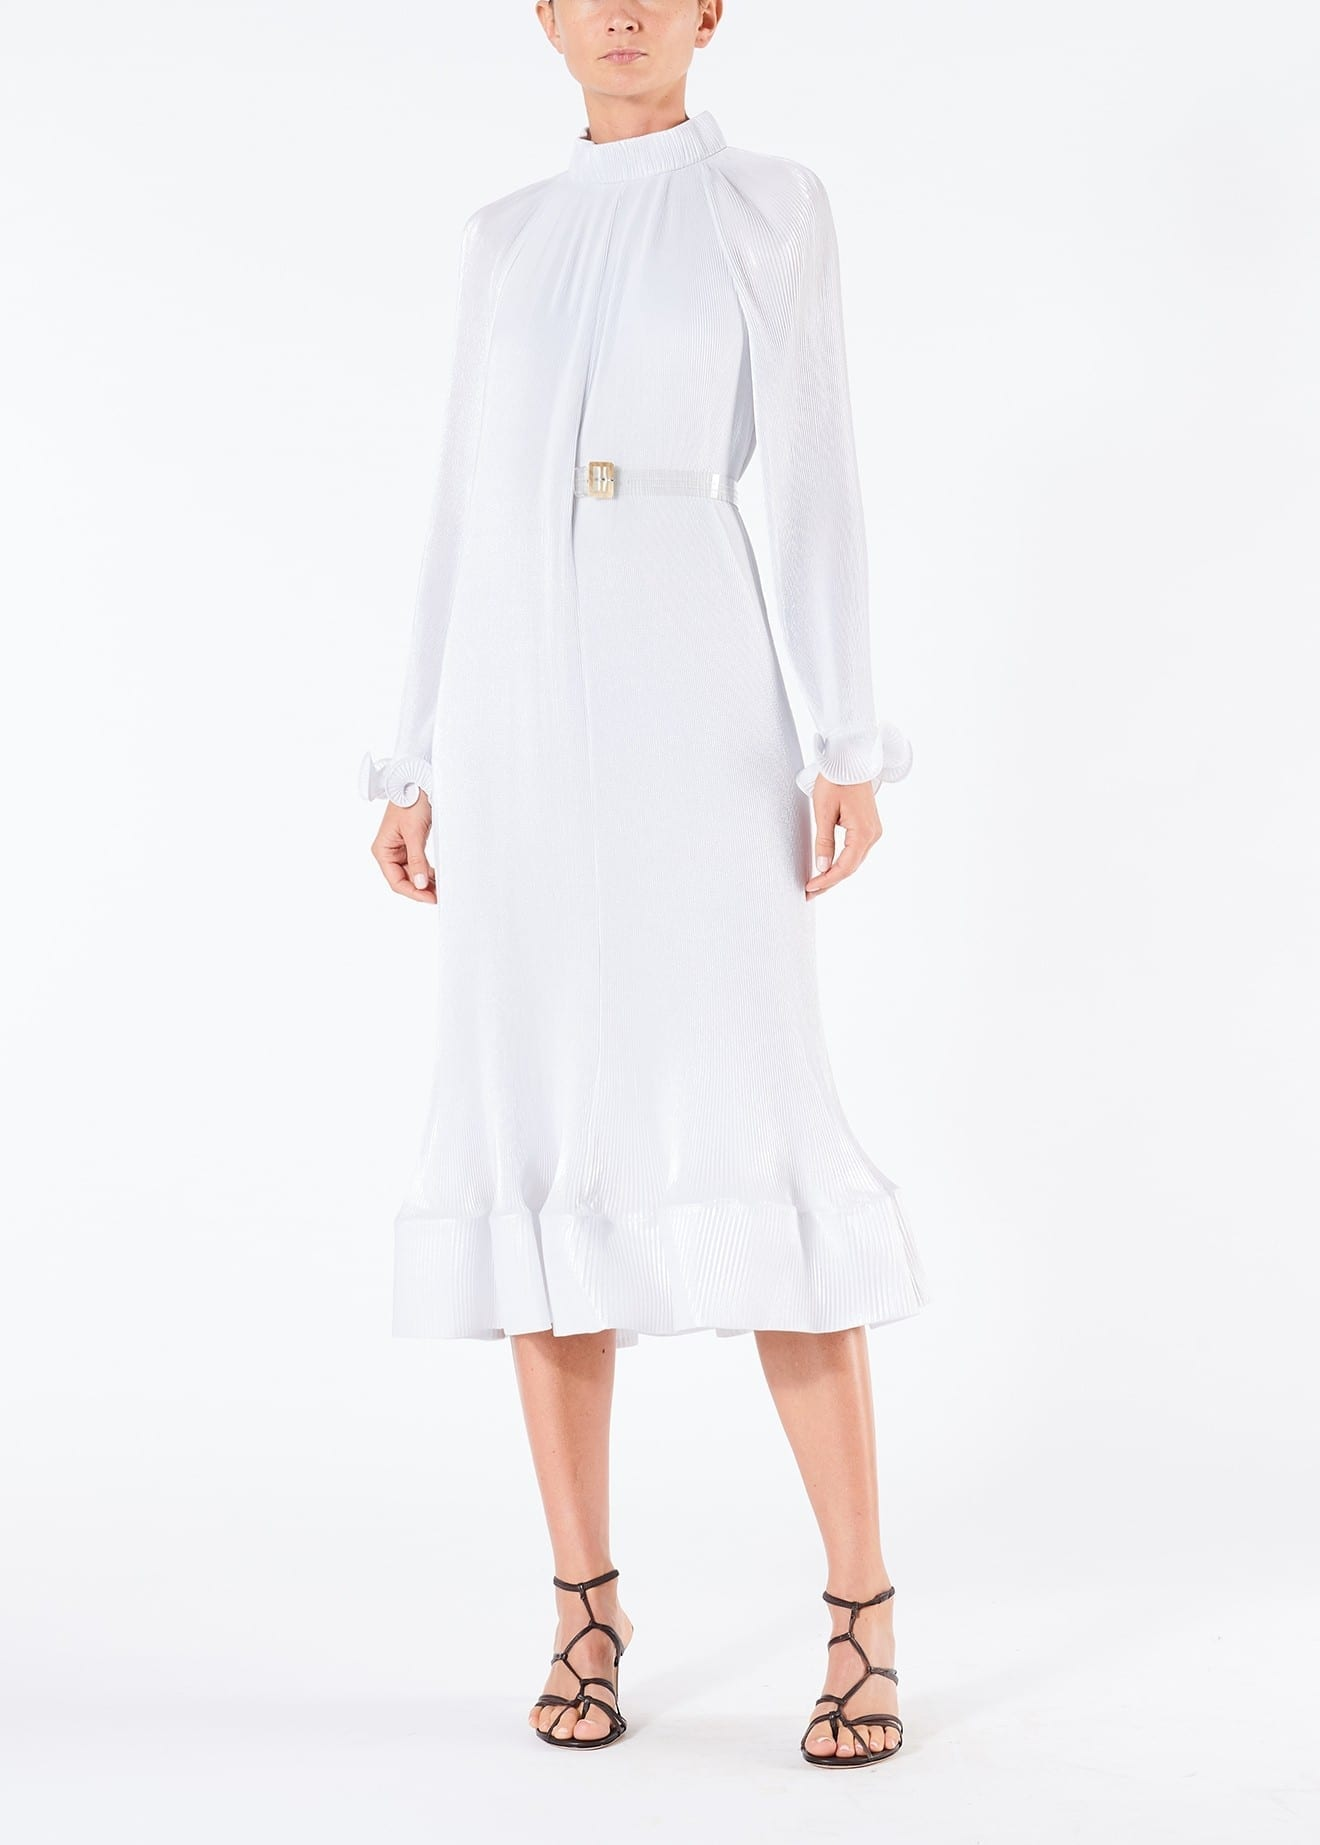 TIBI Removable Belt With Pleated Silver Dress